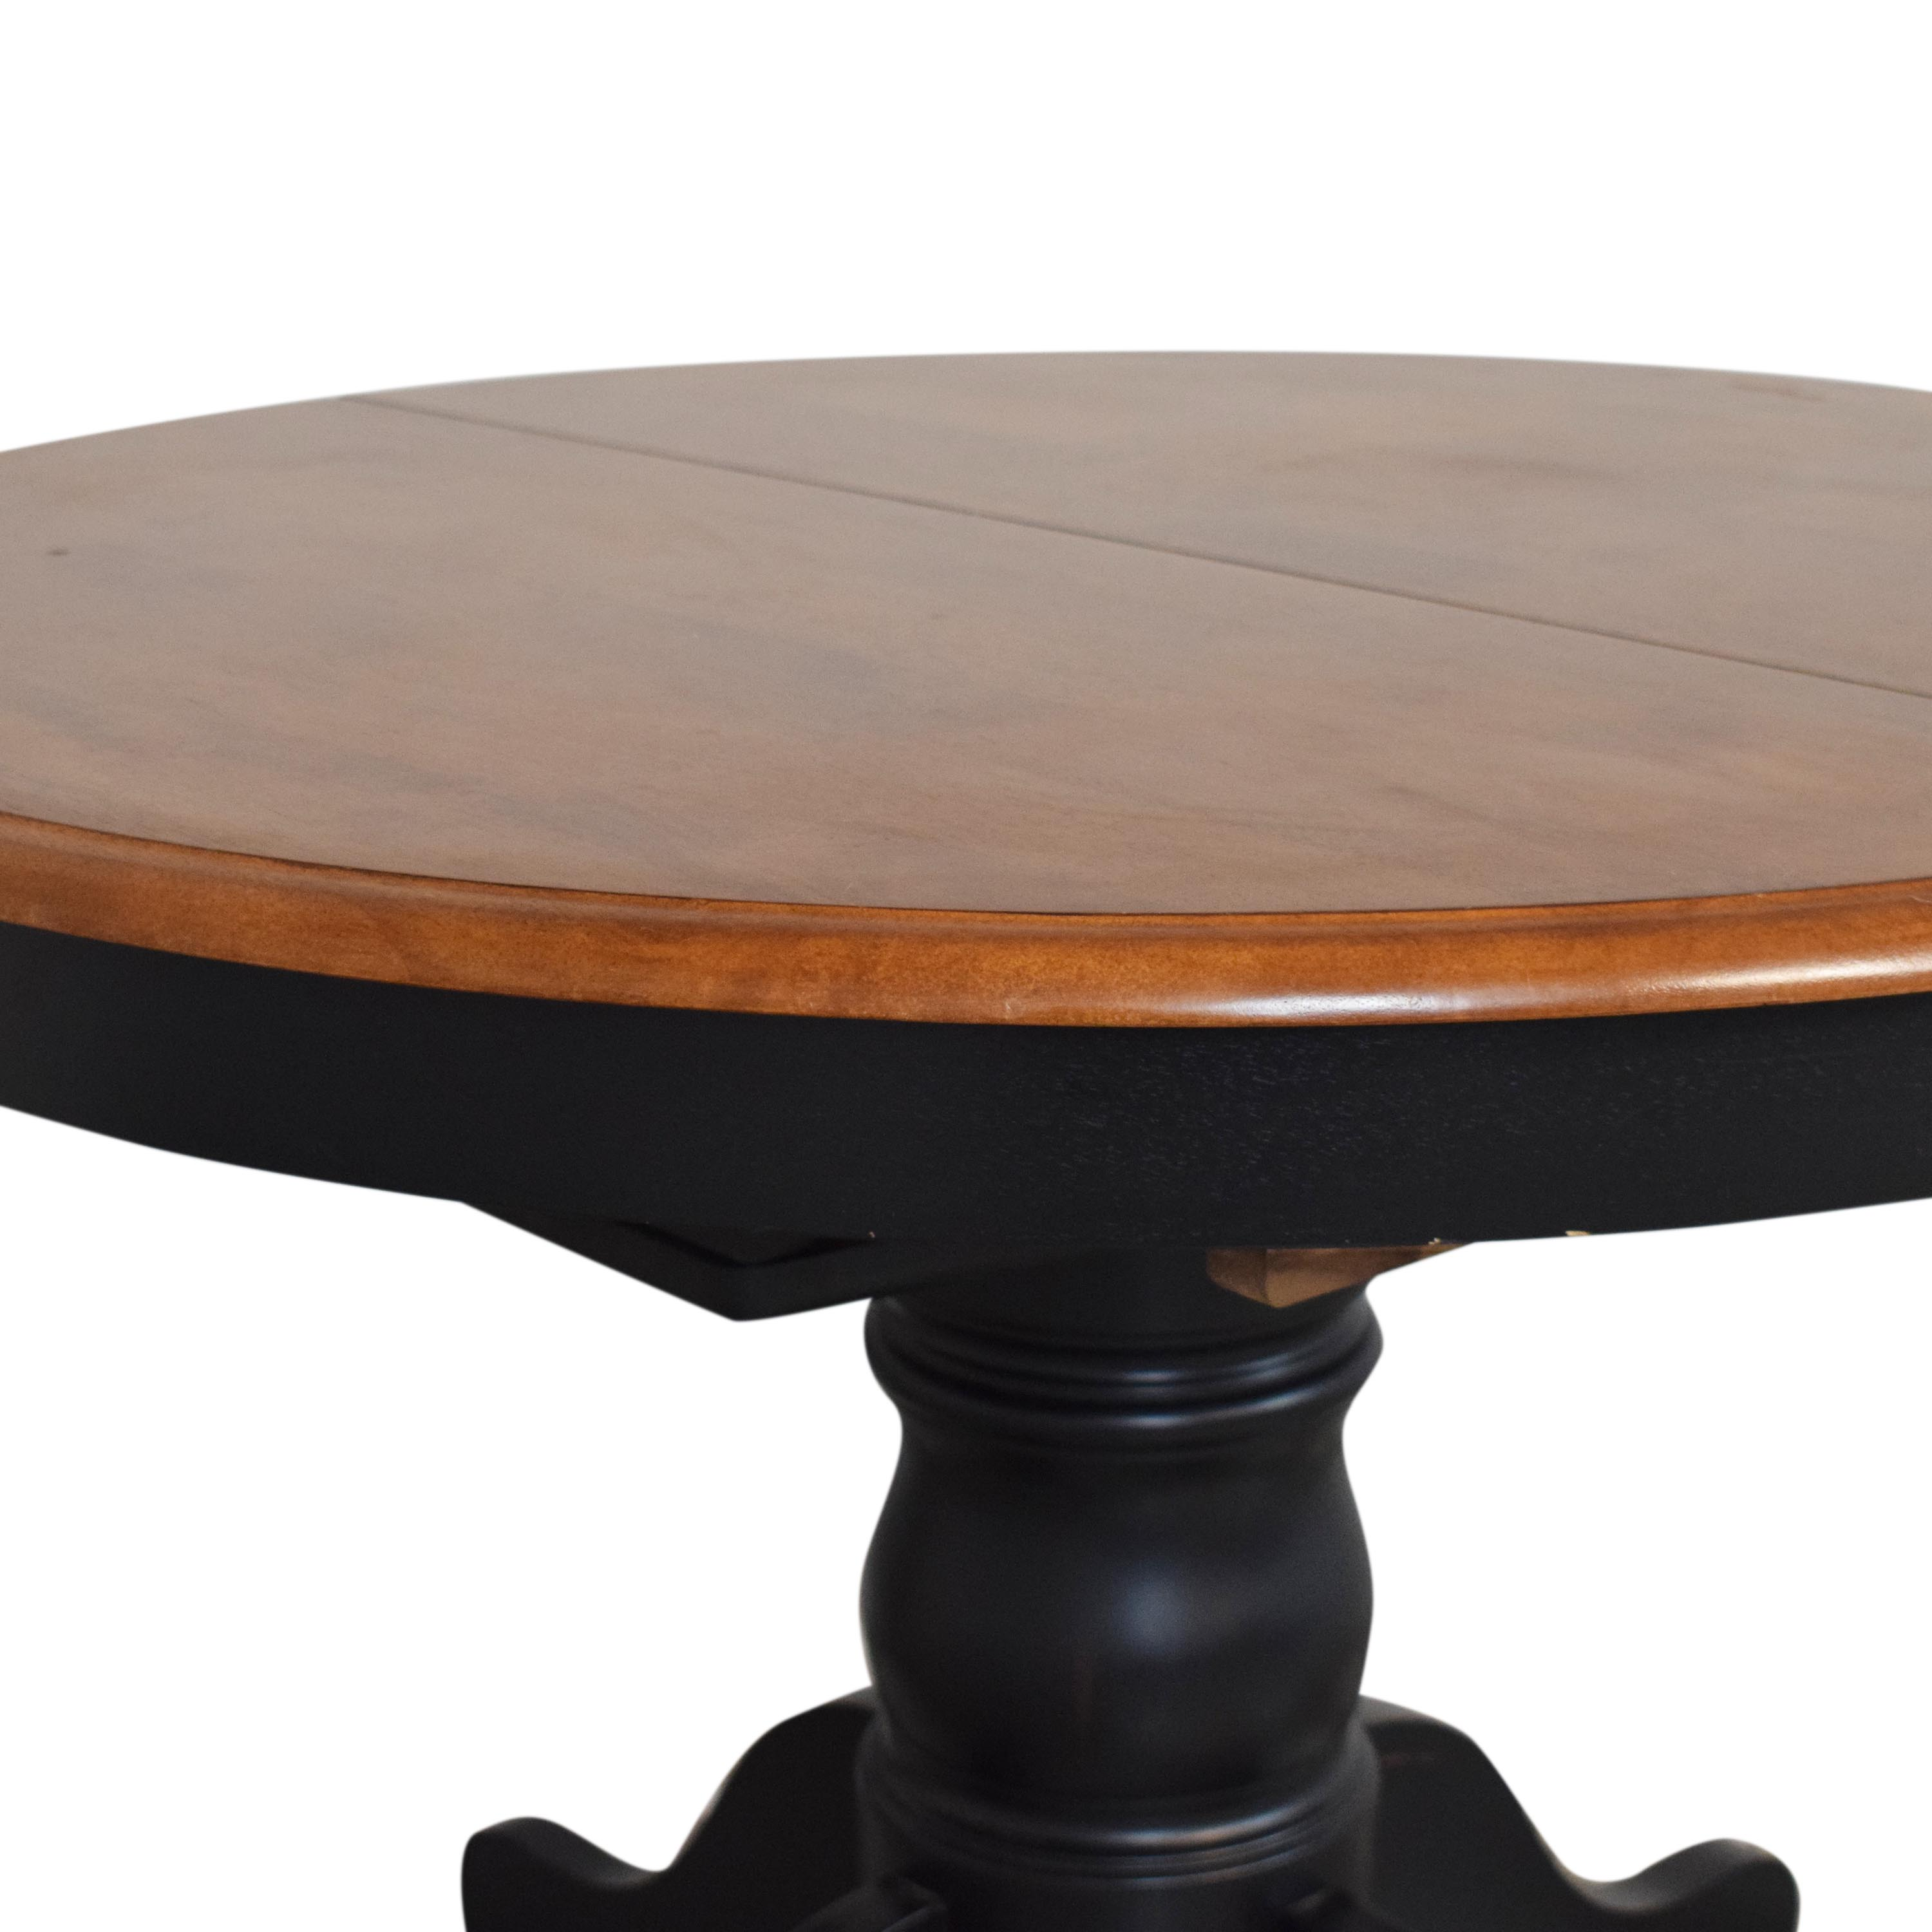 Raymour & Flanigan Raymour & Flanigan Expandable Dining Table ct